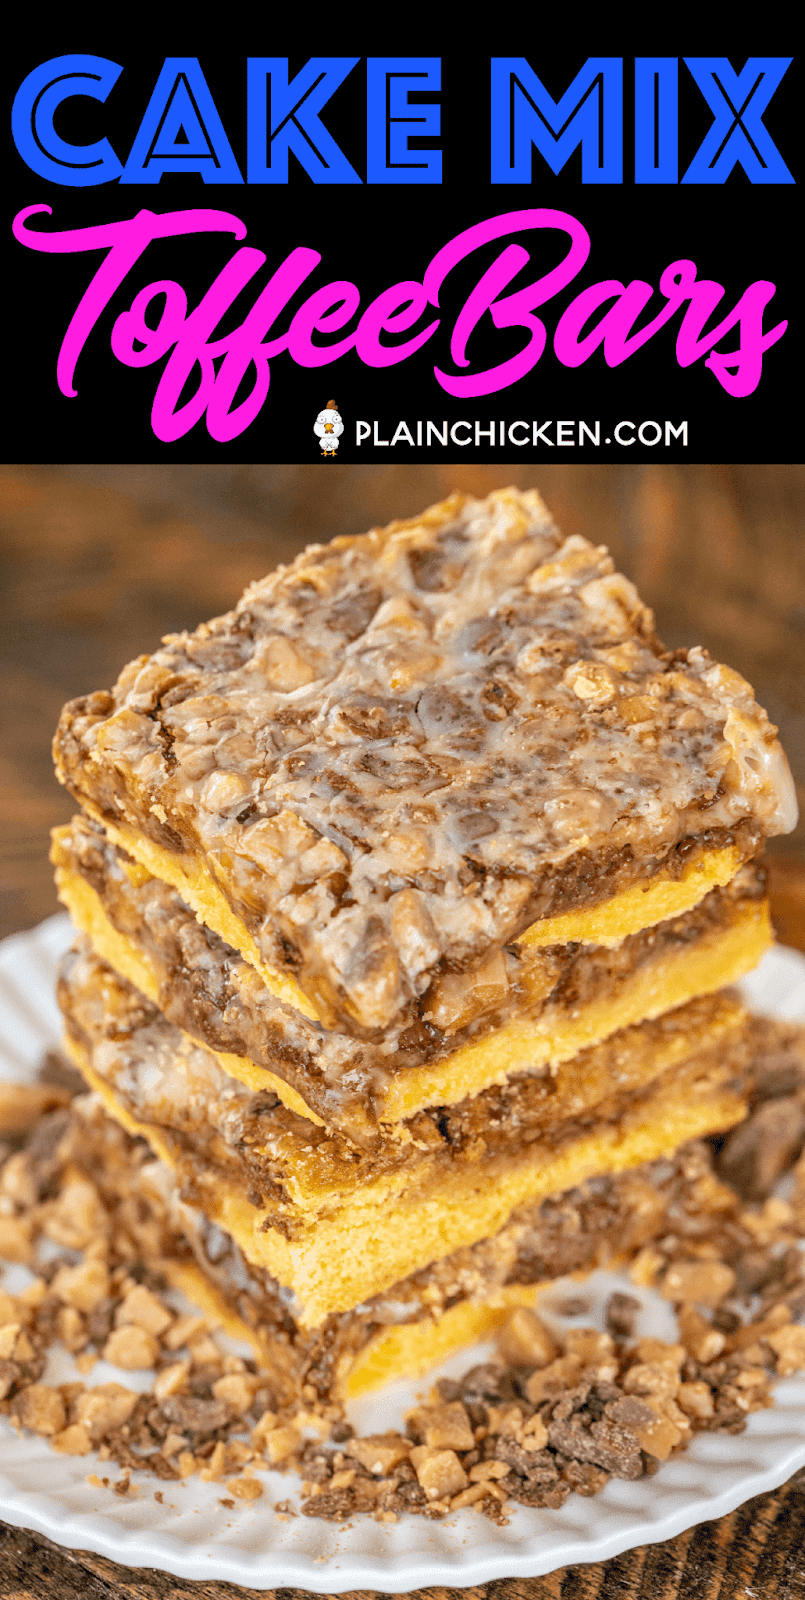 Cake Mix Toffee Bars - only 5 ingredients!! Cake mix, eggs, butter, toffee bits and sweetened condensed milk. I took these to a party and they were gone in minutes! I always double the recipe now because everyone goes crazy over this easy dessert!! These are best if you make them the day before and refrigerate overnight. Great for parties, tailgating and your holiday cookie tray. YUM! #dessert #toffee #cakemix